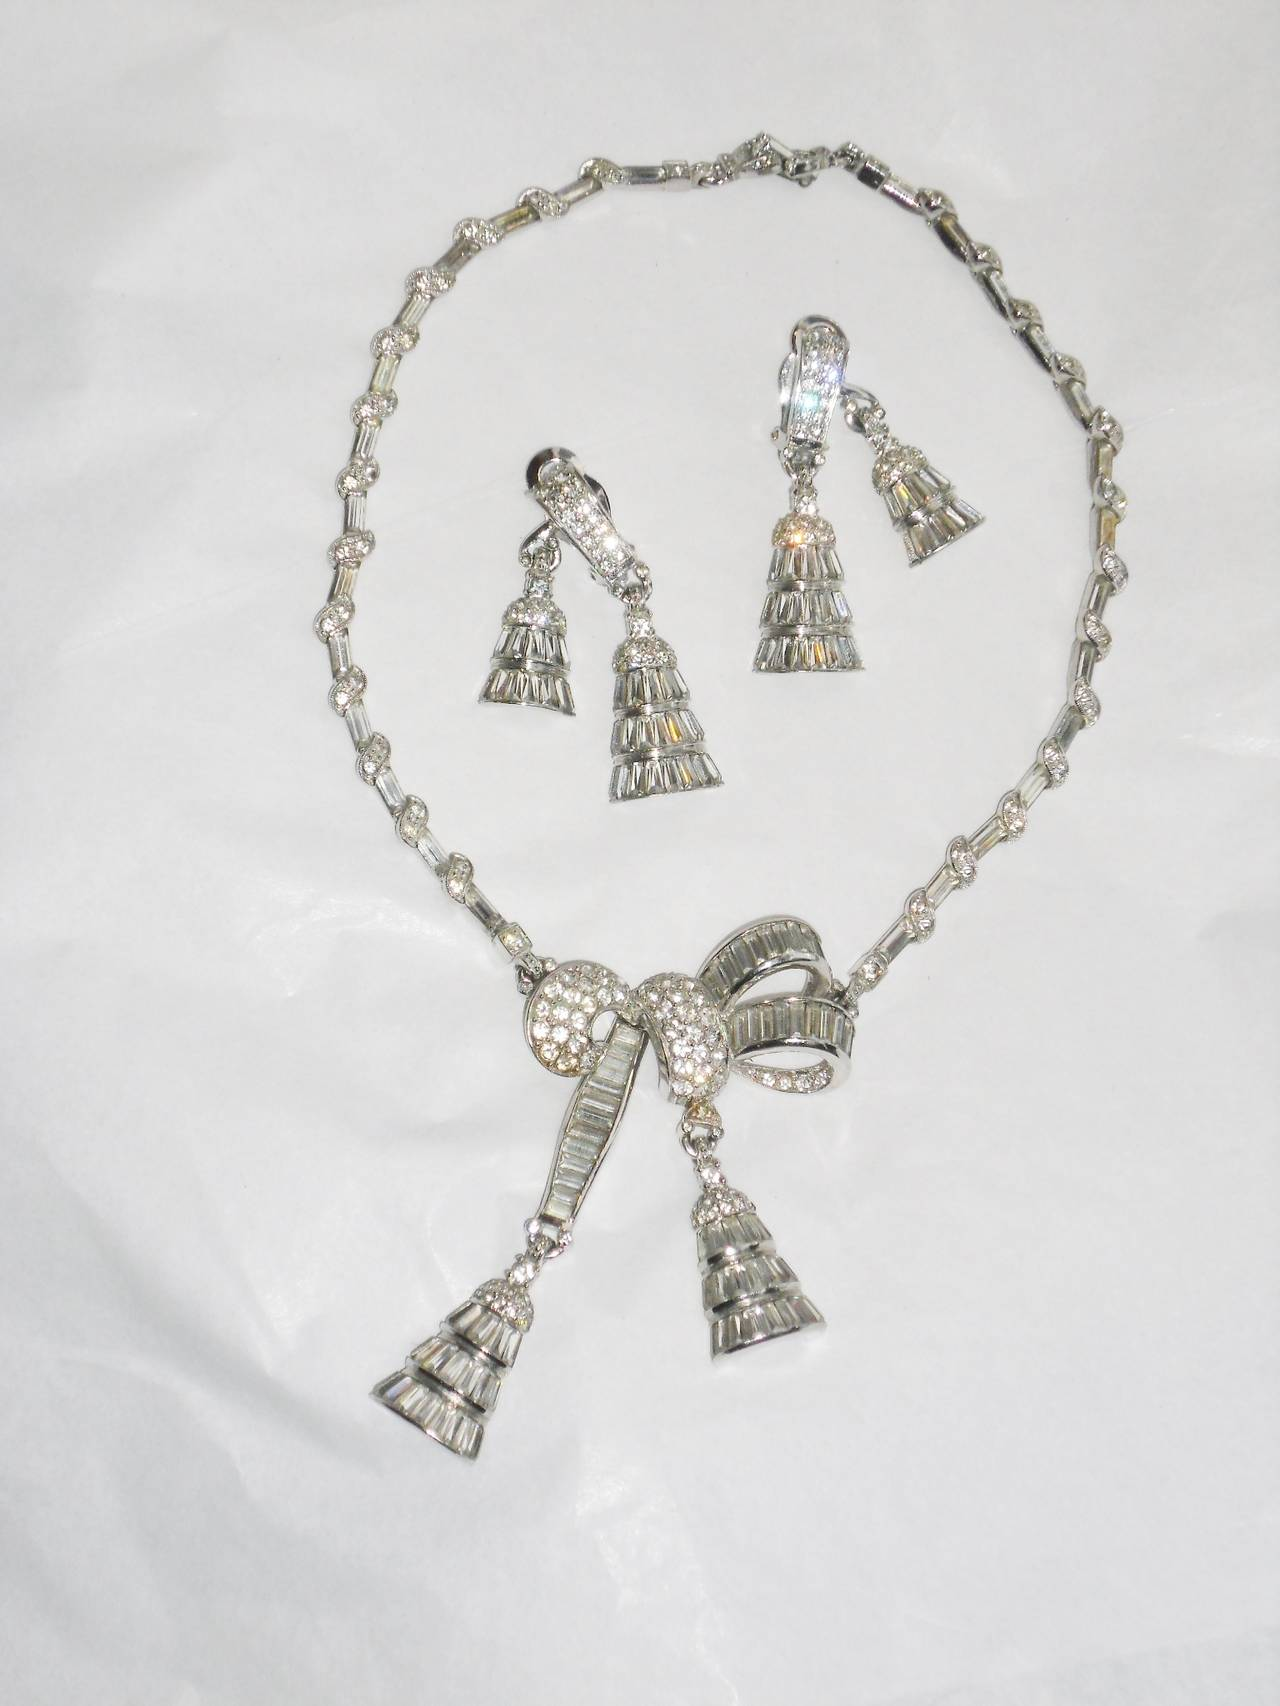 Circa 1940's beautiful  PENNINO lariat pendant necklace and clip earrings set. Rhodium-plated base metal. Crystal clear stones.